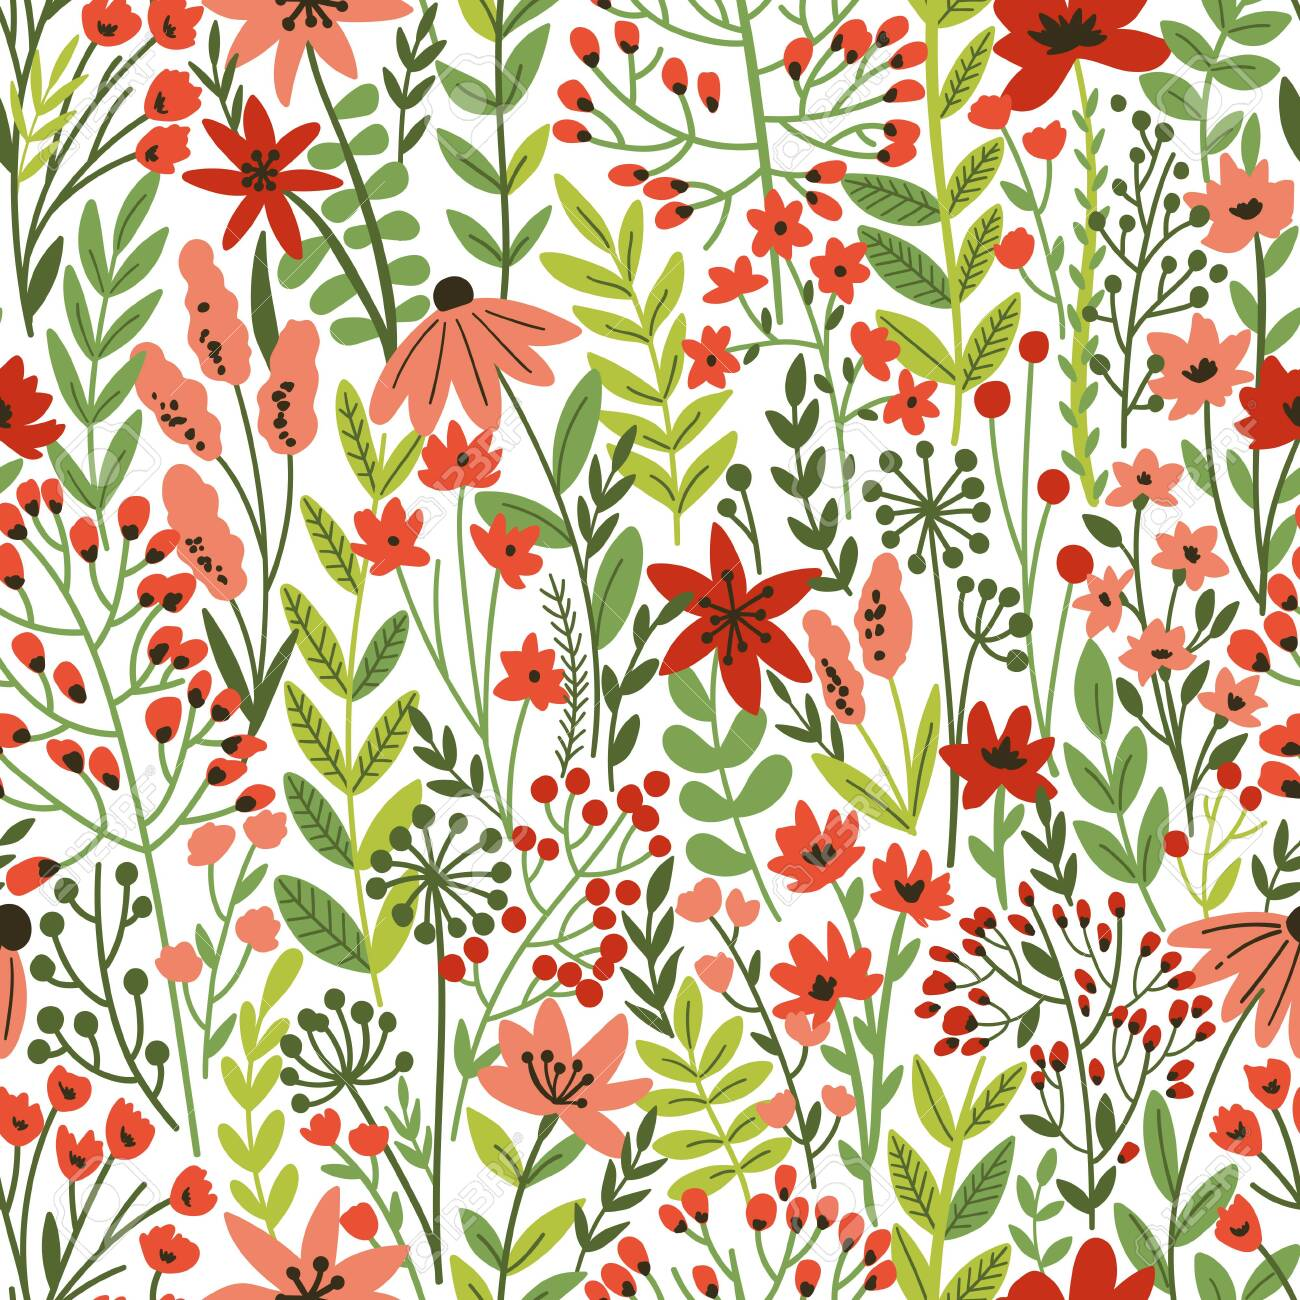 Cute Floral seamless pattern with tiny flower. Wild flowers illustration. Elegant template for fashion prints. - 149823752